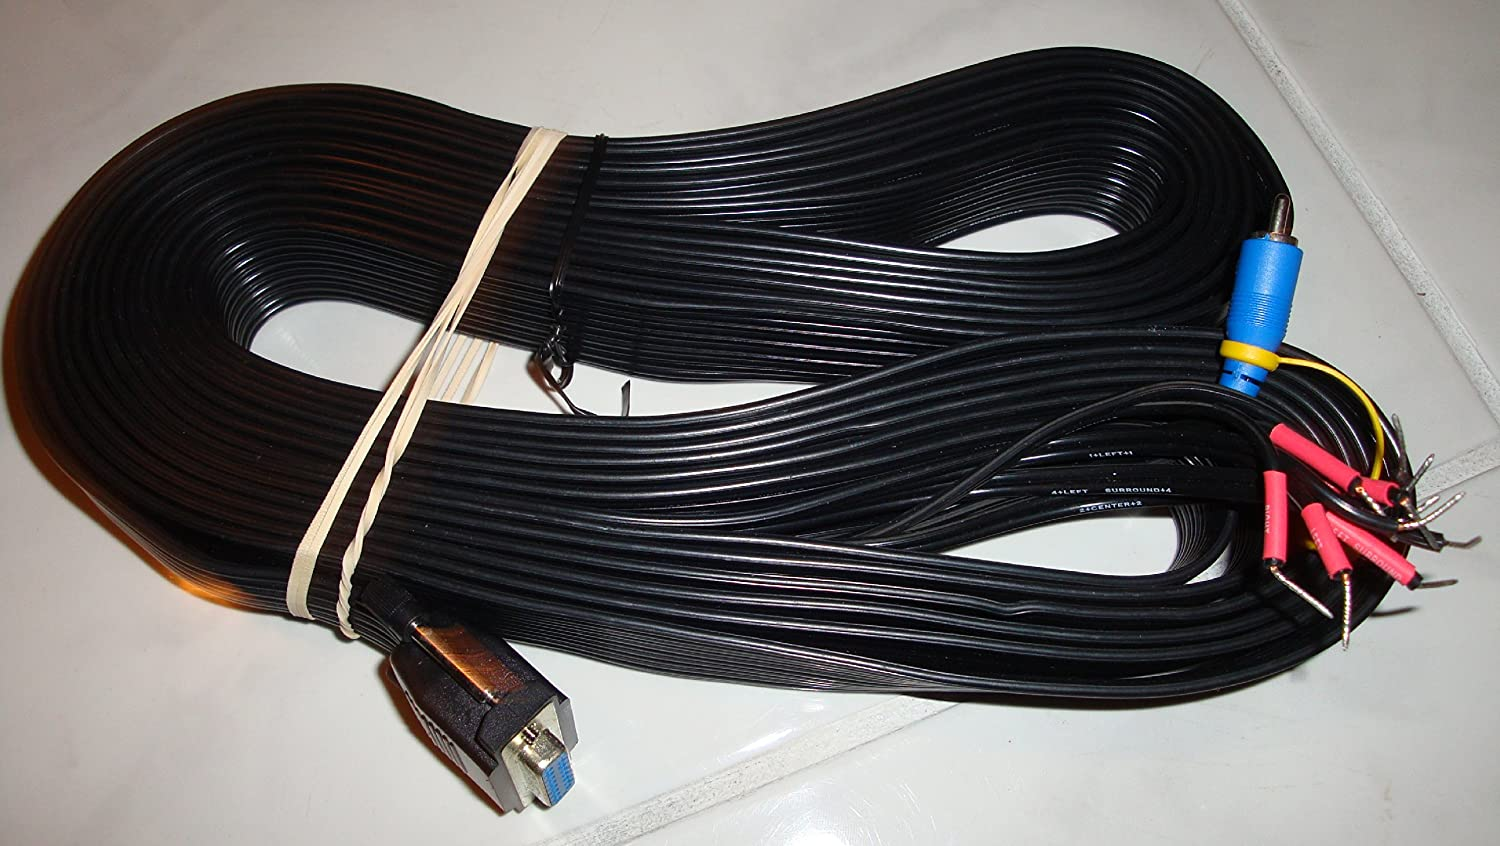 91VP4Uej%2BCL._SL1500_ amazon com bose audio cable 15 pin from subwoofer to receiver  at sewacar.co